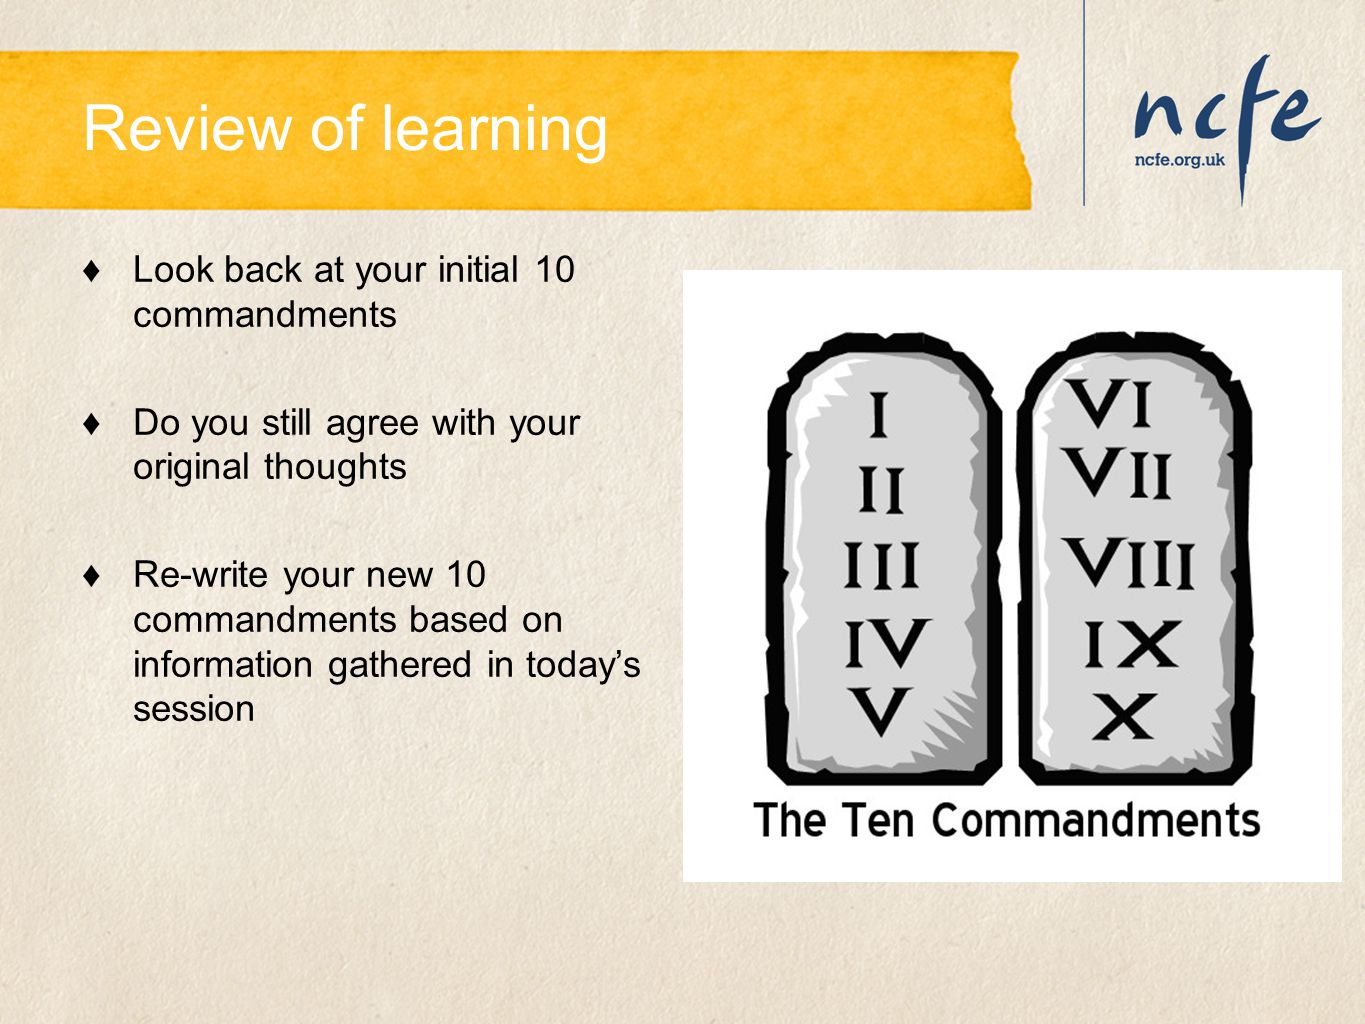 Review of learning ♦Look back at your initial 10 commandments ♦Do you still agree with your original thoughts ♦Re-write your new 10 commandments based